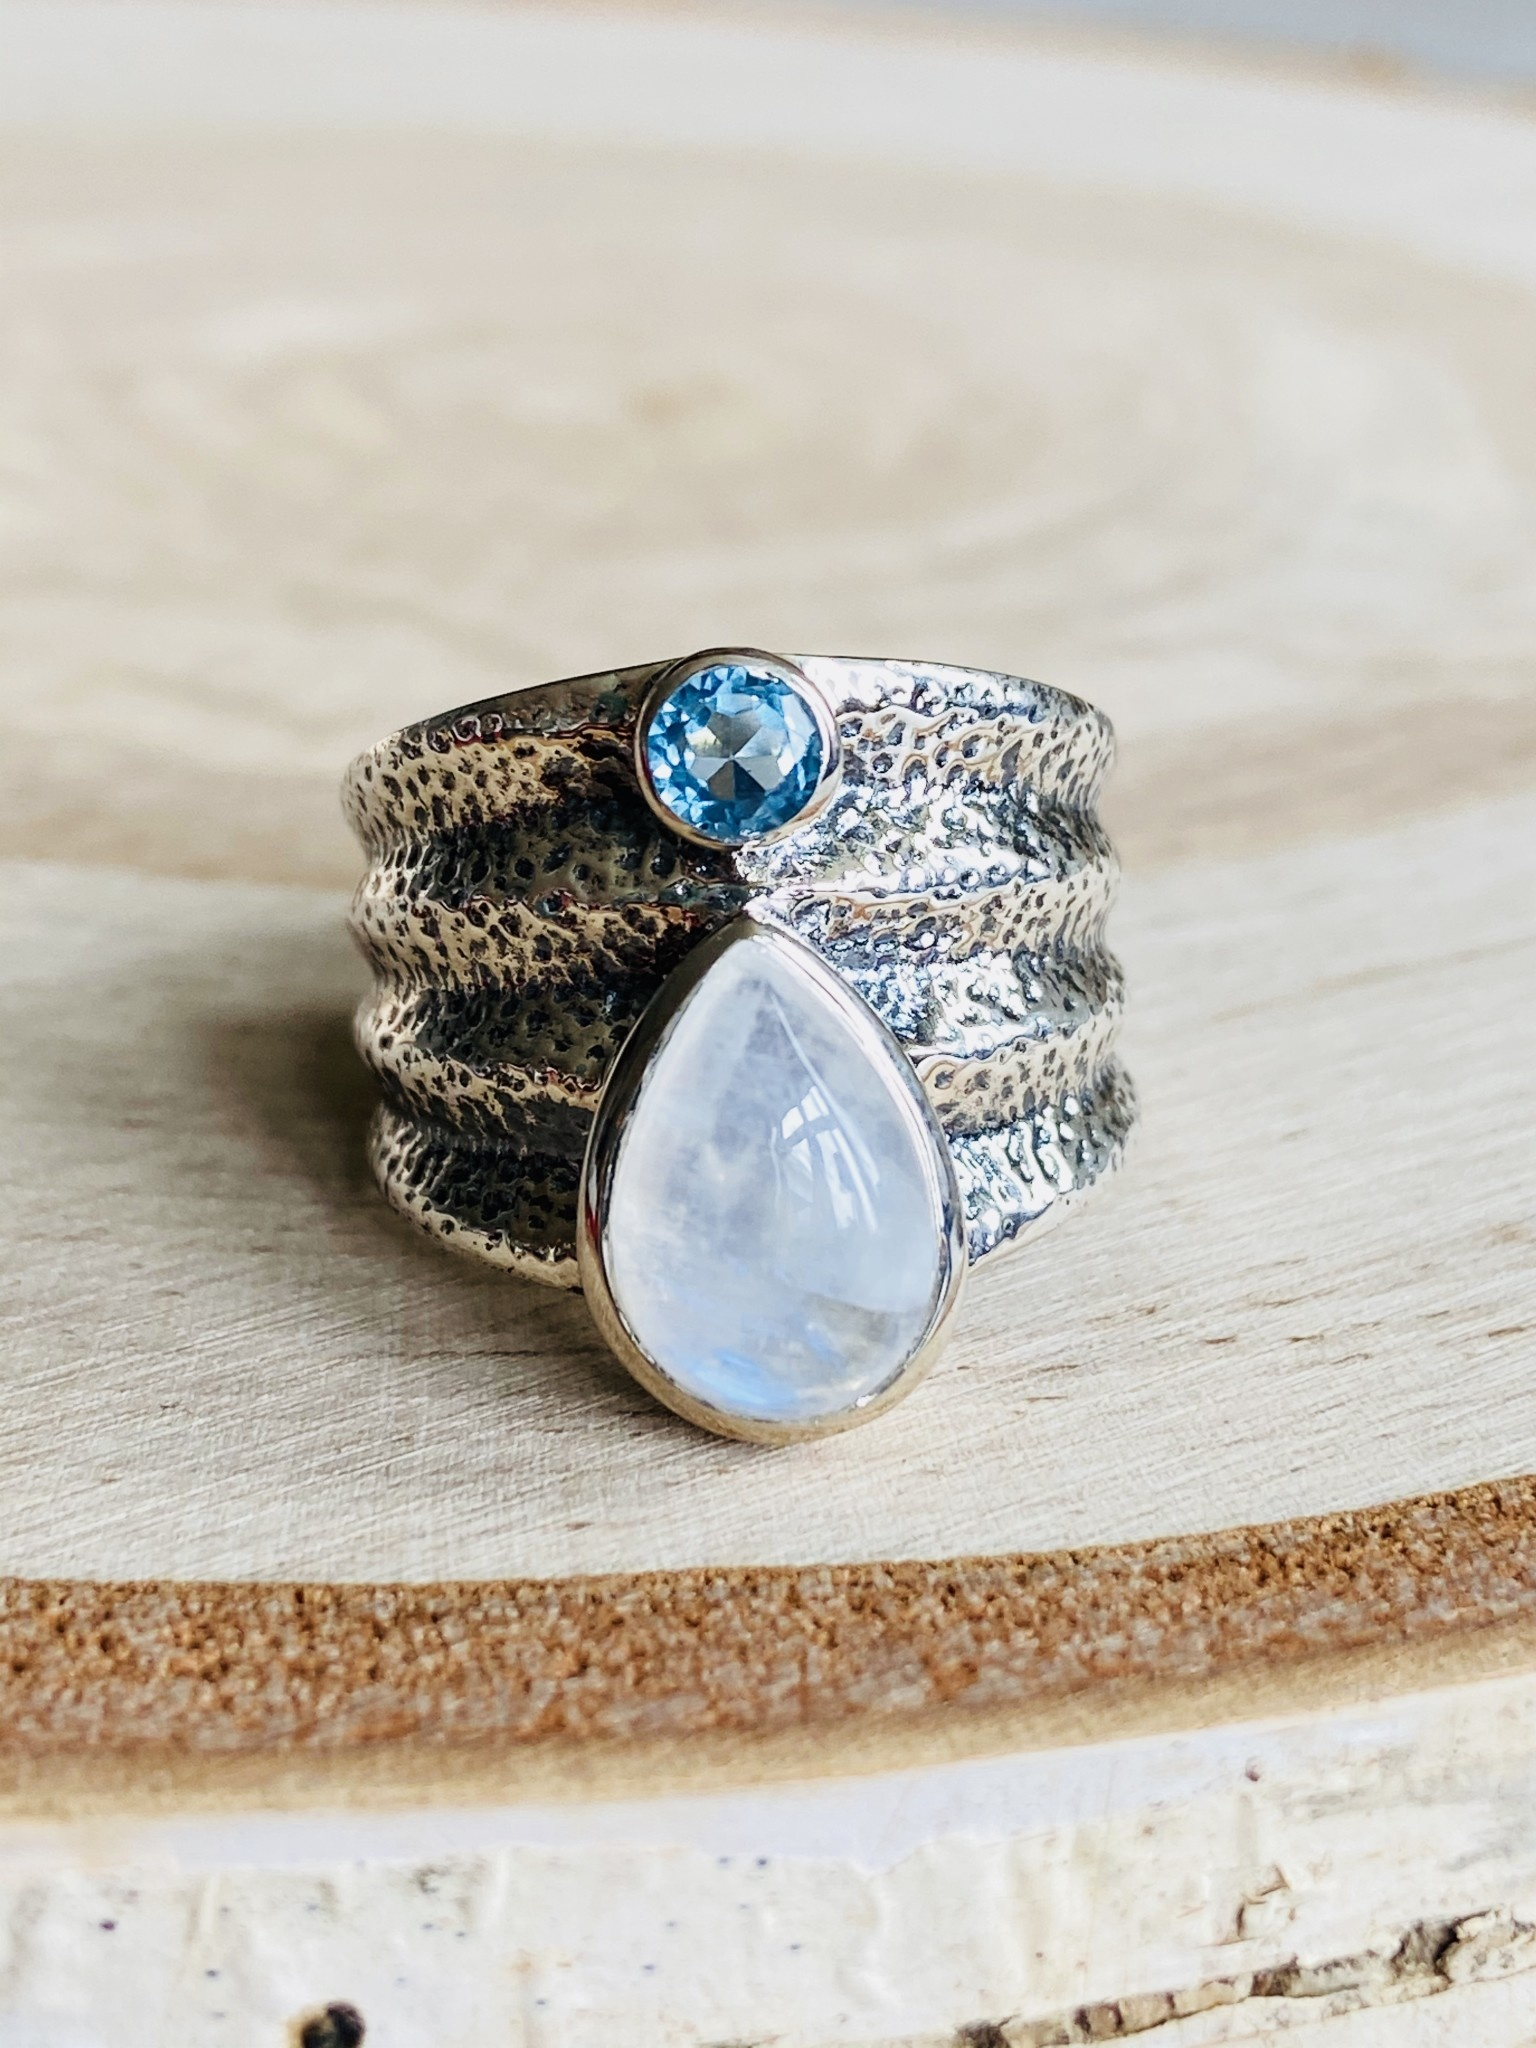 Tear Drop Moonstone & Blue Topaz Ring - Size 9